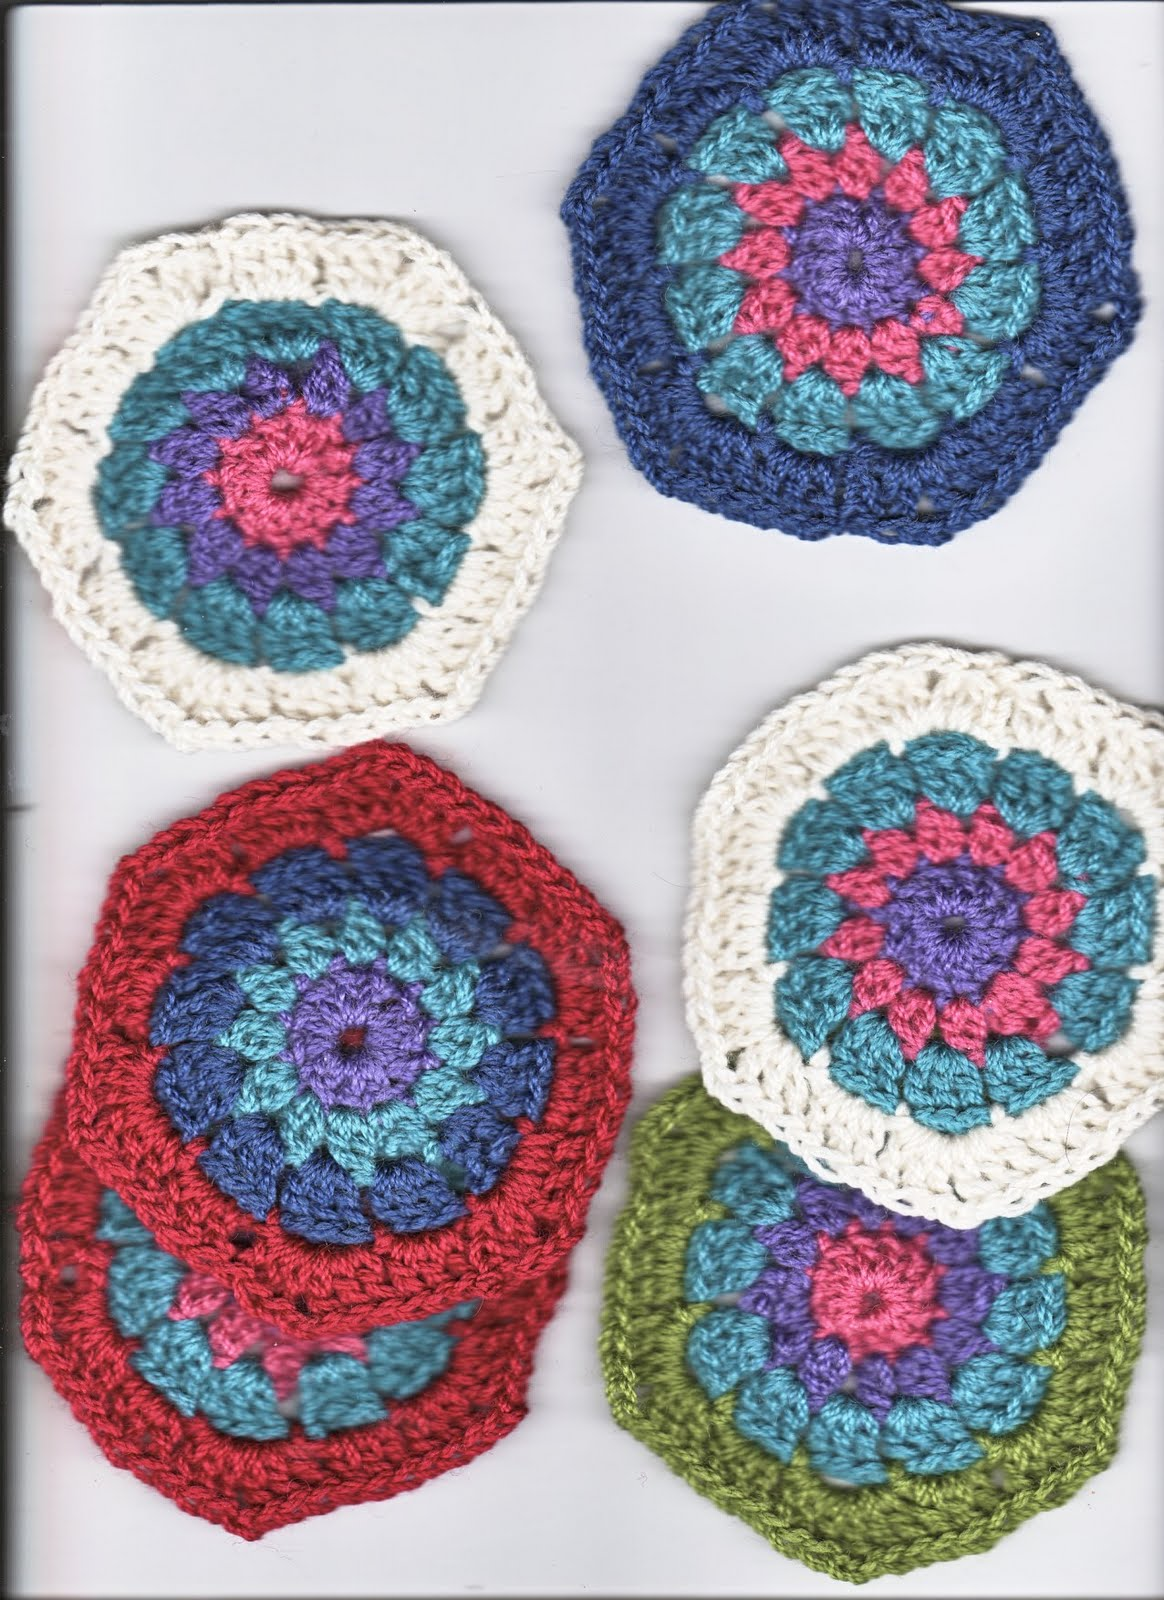 Crocheting Quilts : Arty Ladys blog: Crochet Hexagon Quilt